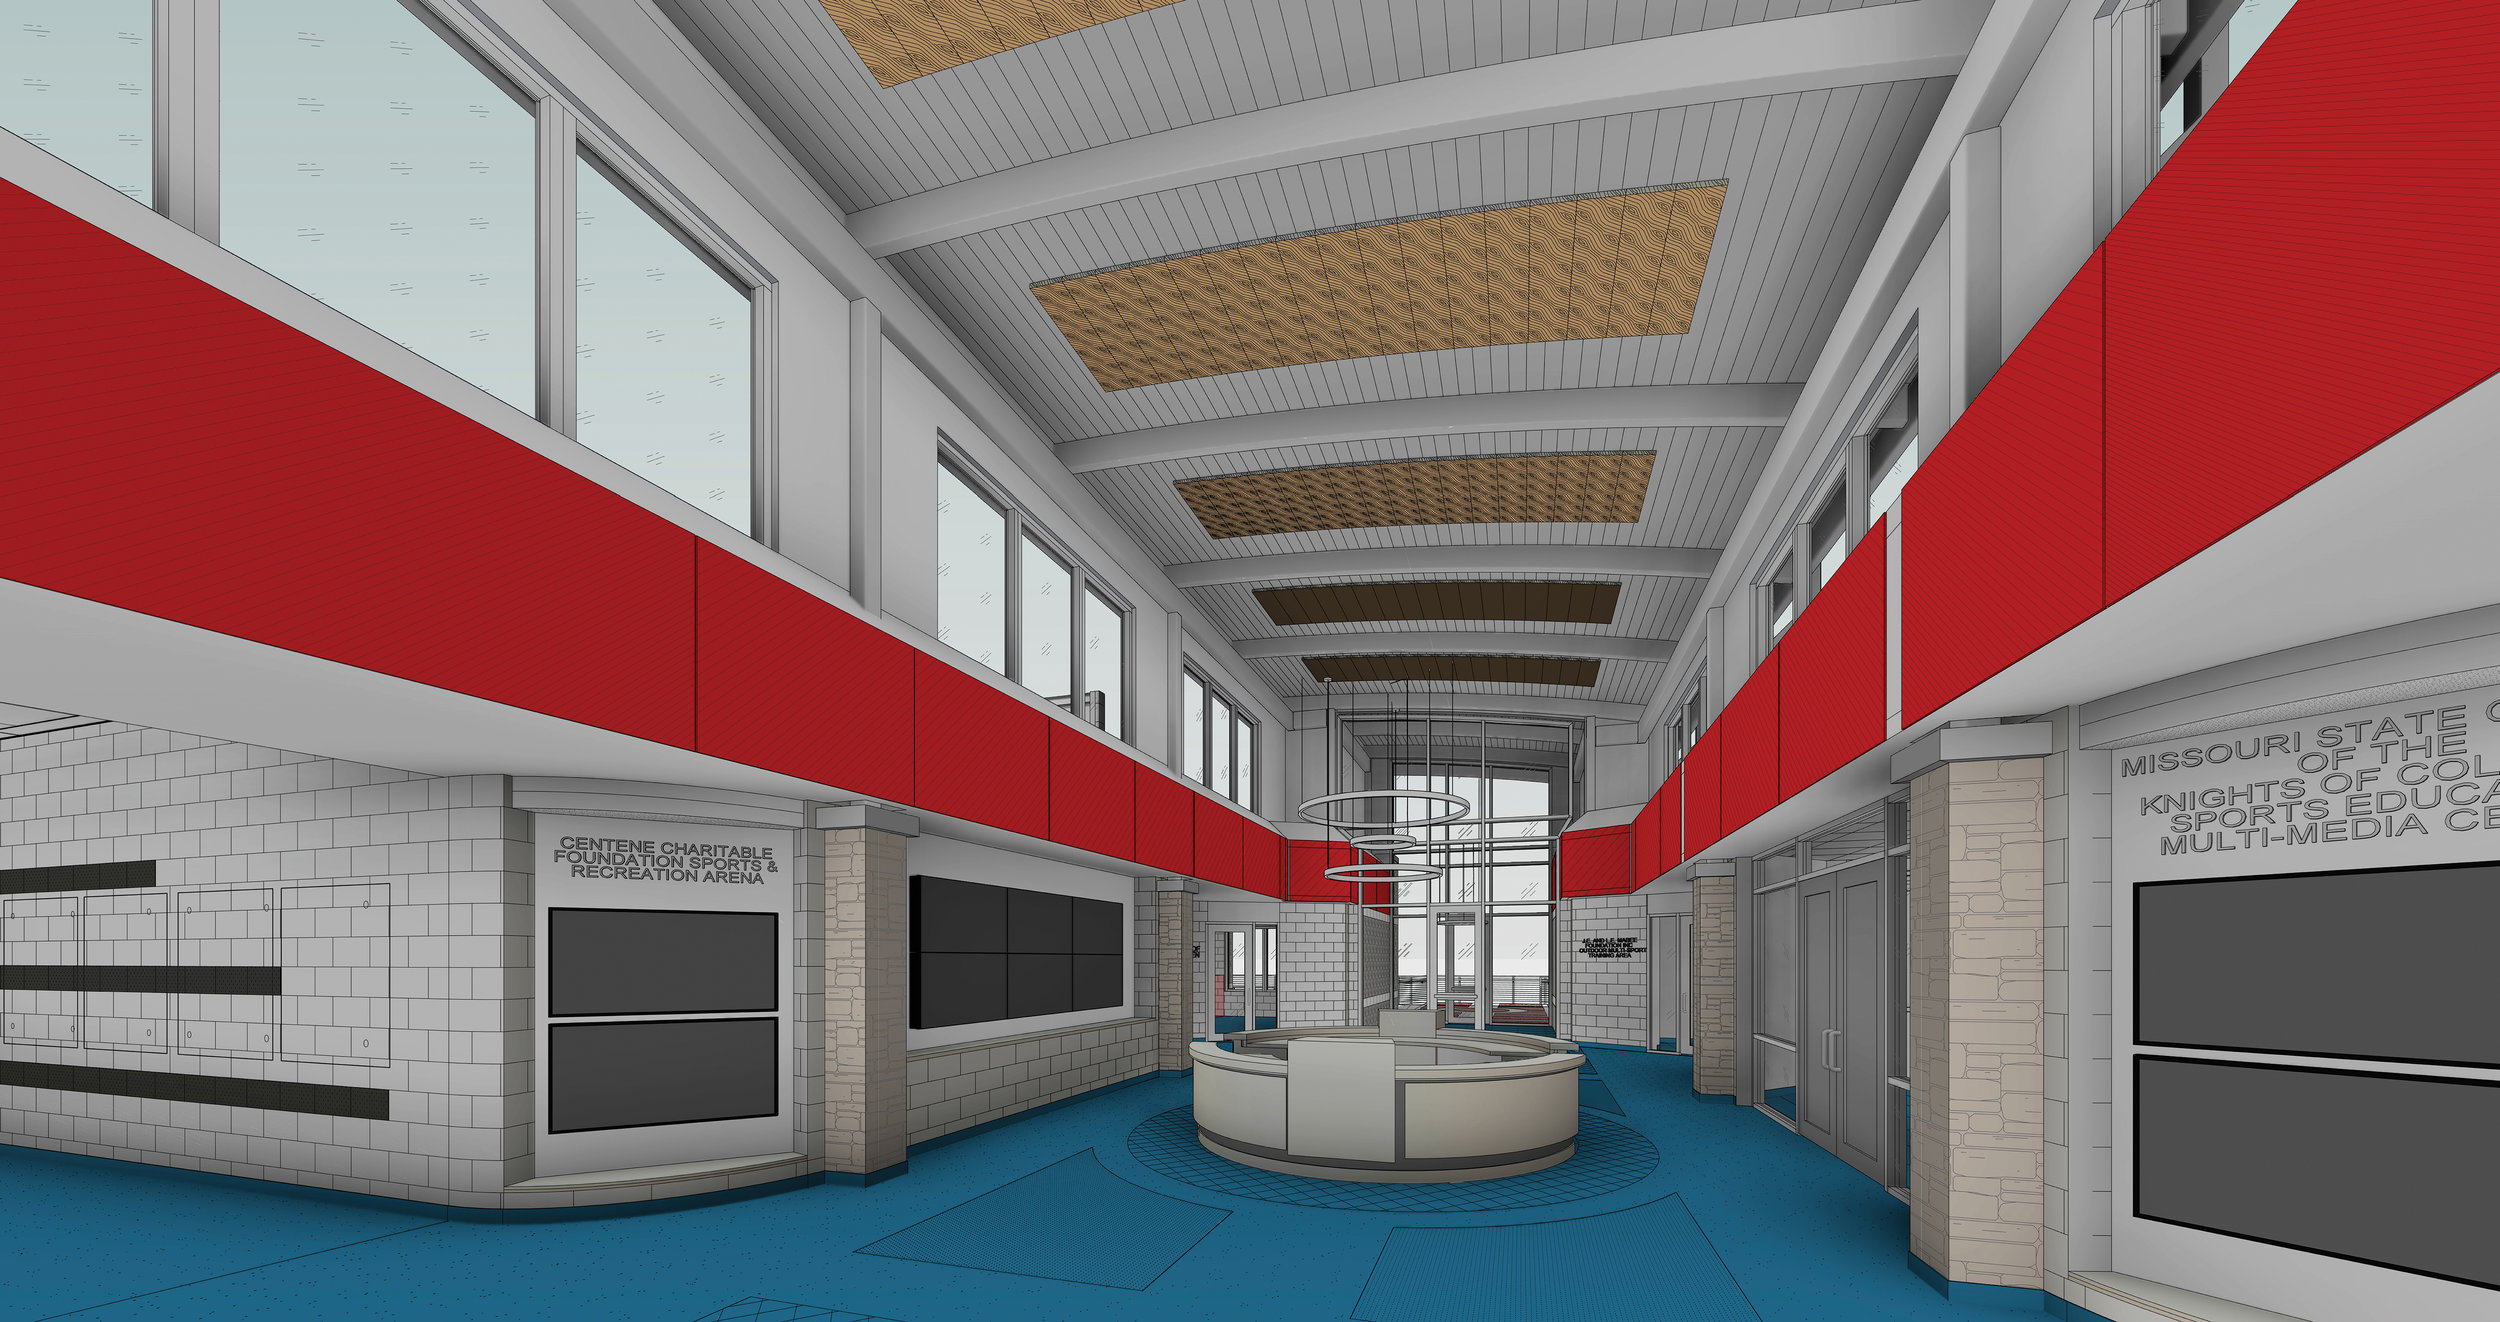 The interior lobby of the main facility of the SOMO Training for Life Campus will feature an accessible entrance, natural light and access to classroom training rooms and the indoor sports arena.